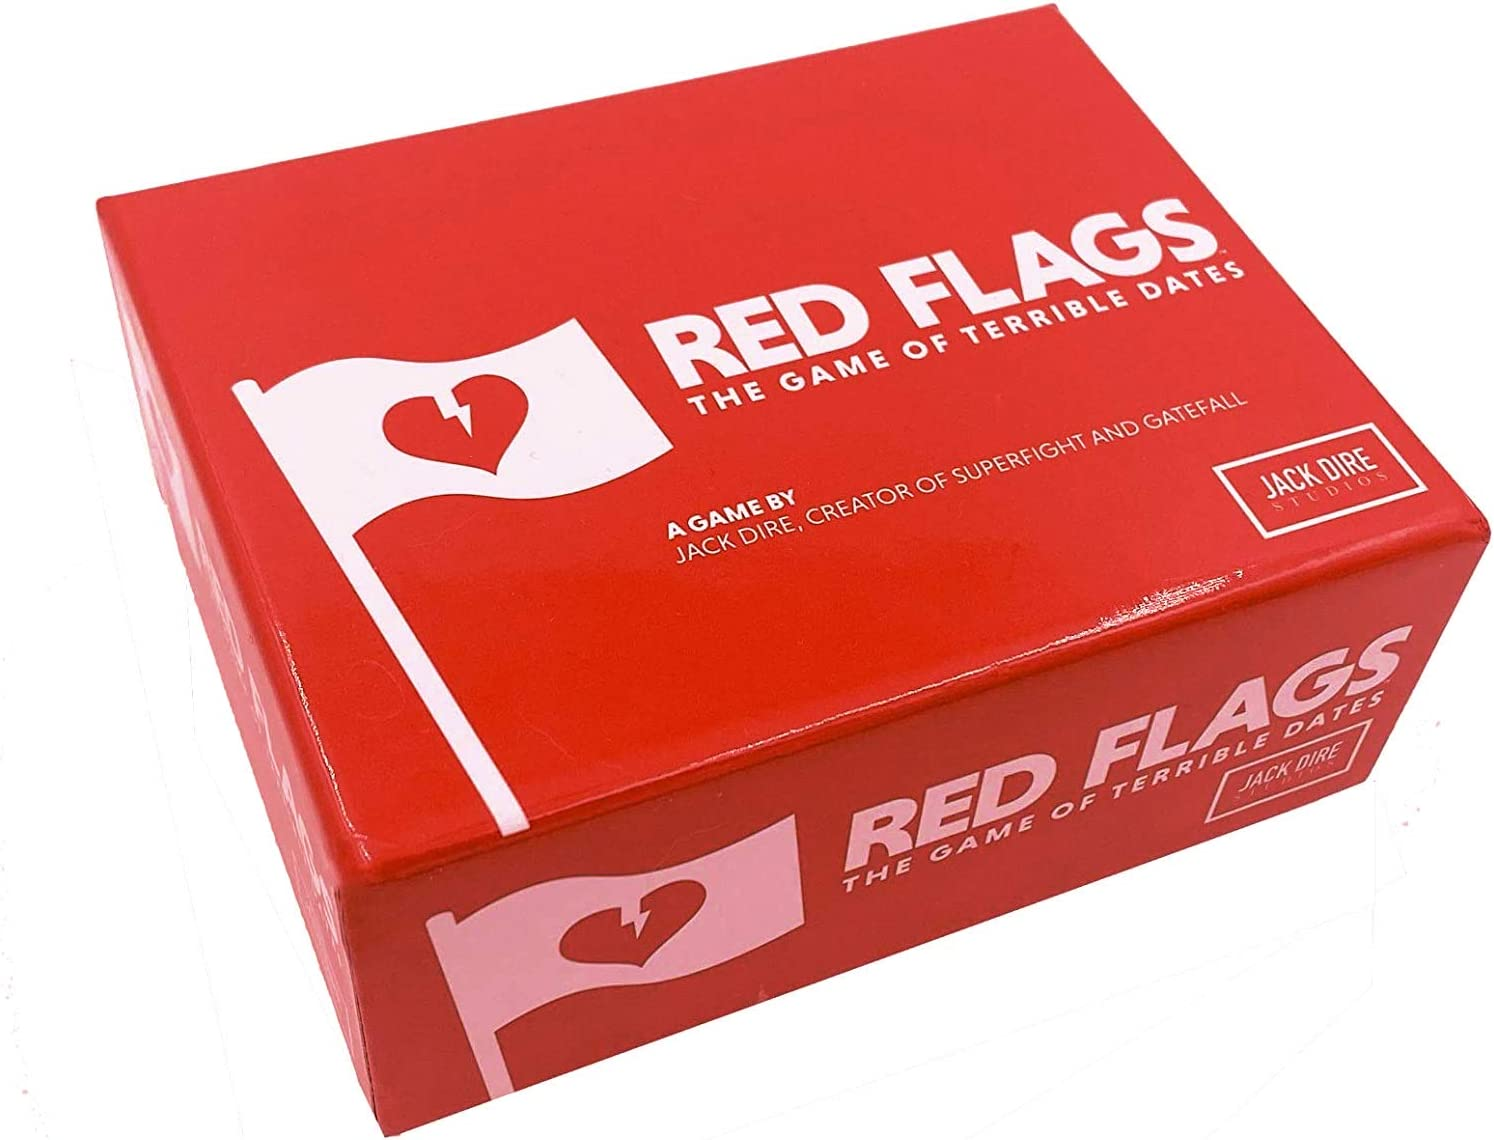 Red Flags: The Game of Terrible Dates   Funny Card Game / Party Game for Adults, 3-10 Players   by Jack Dire, Creator of Superfight